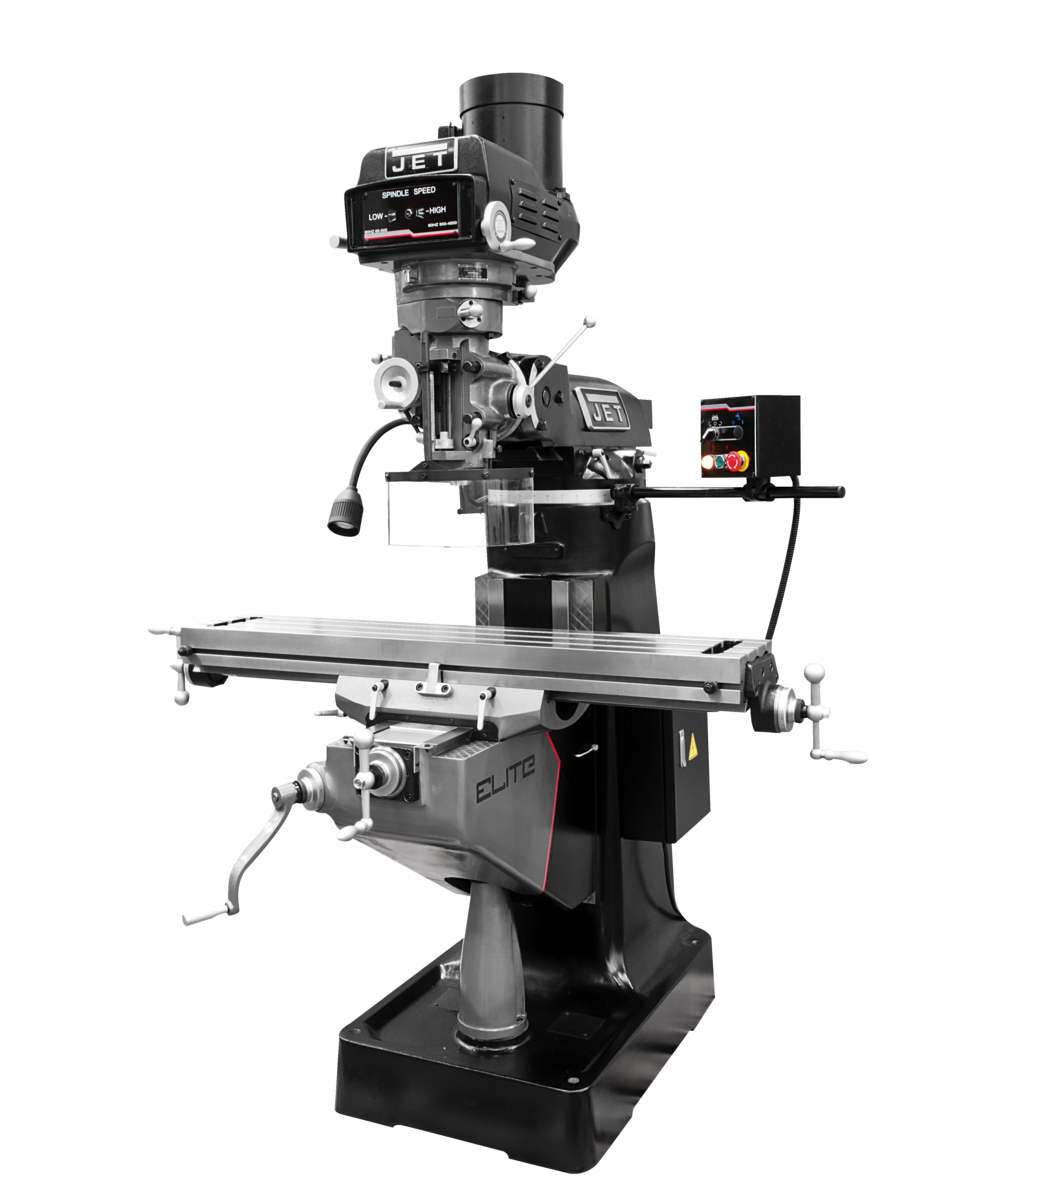 ETM-949 Mill with 2-Axis ACU-RITE 303  DRO and X-Axis JET Powerfeed